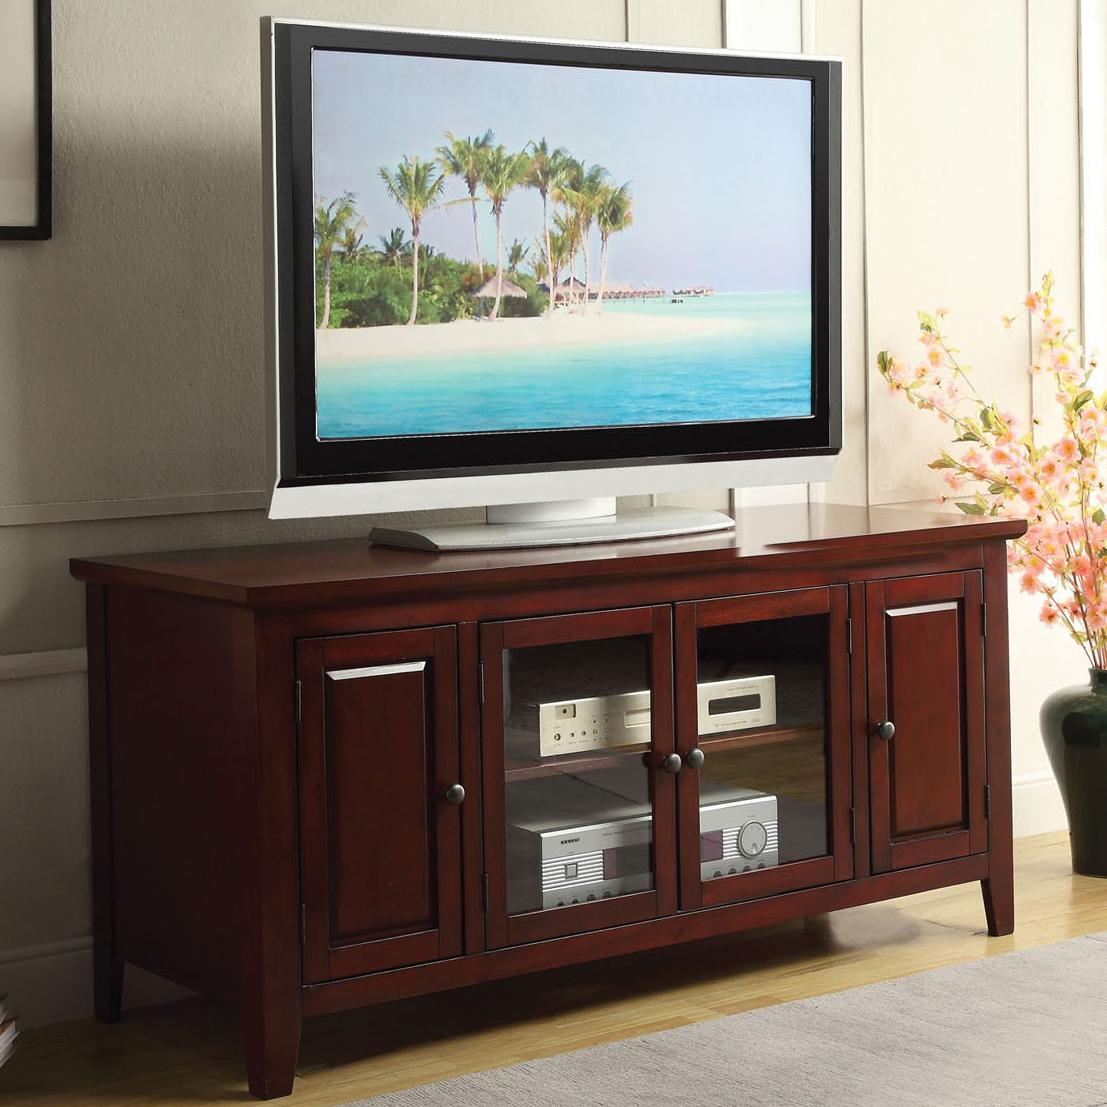 Acme Furniture Christella TV Stand - Item Number: 10340